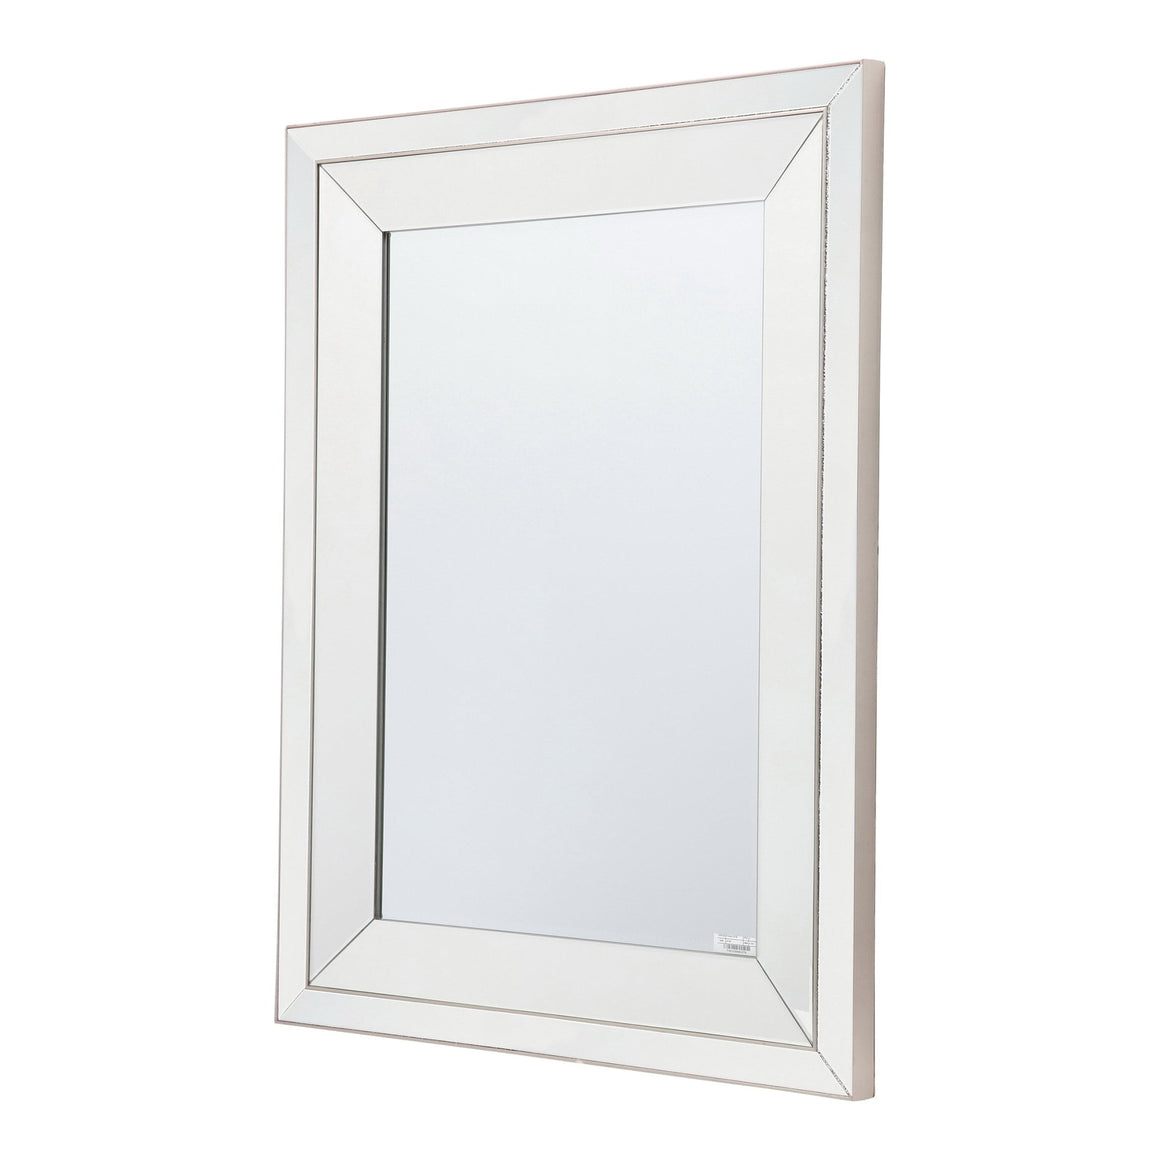 Aztar Medium Mirror